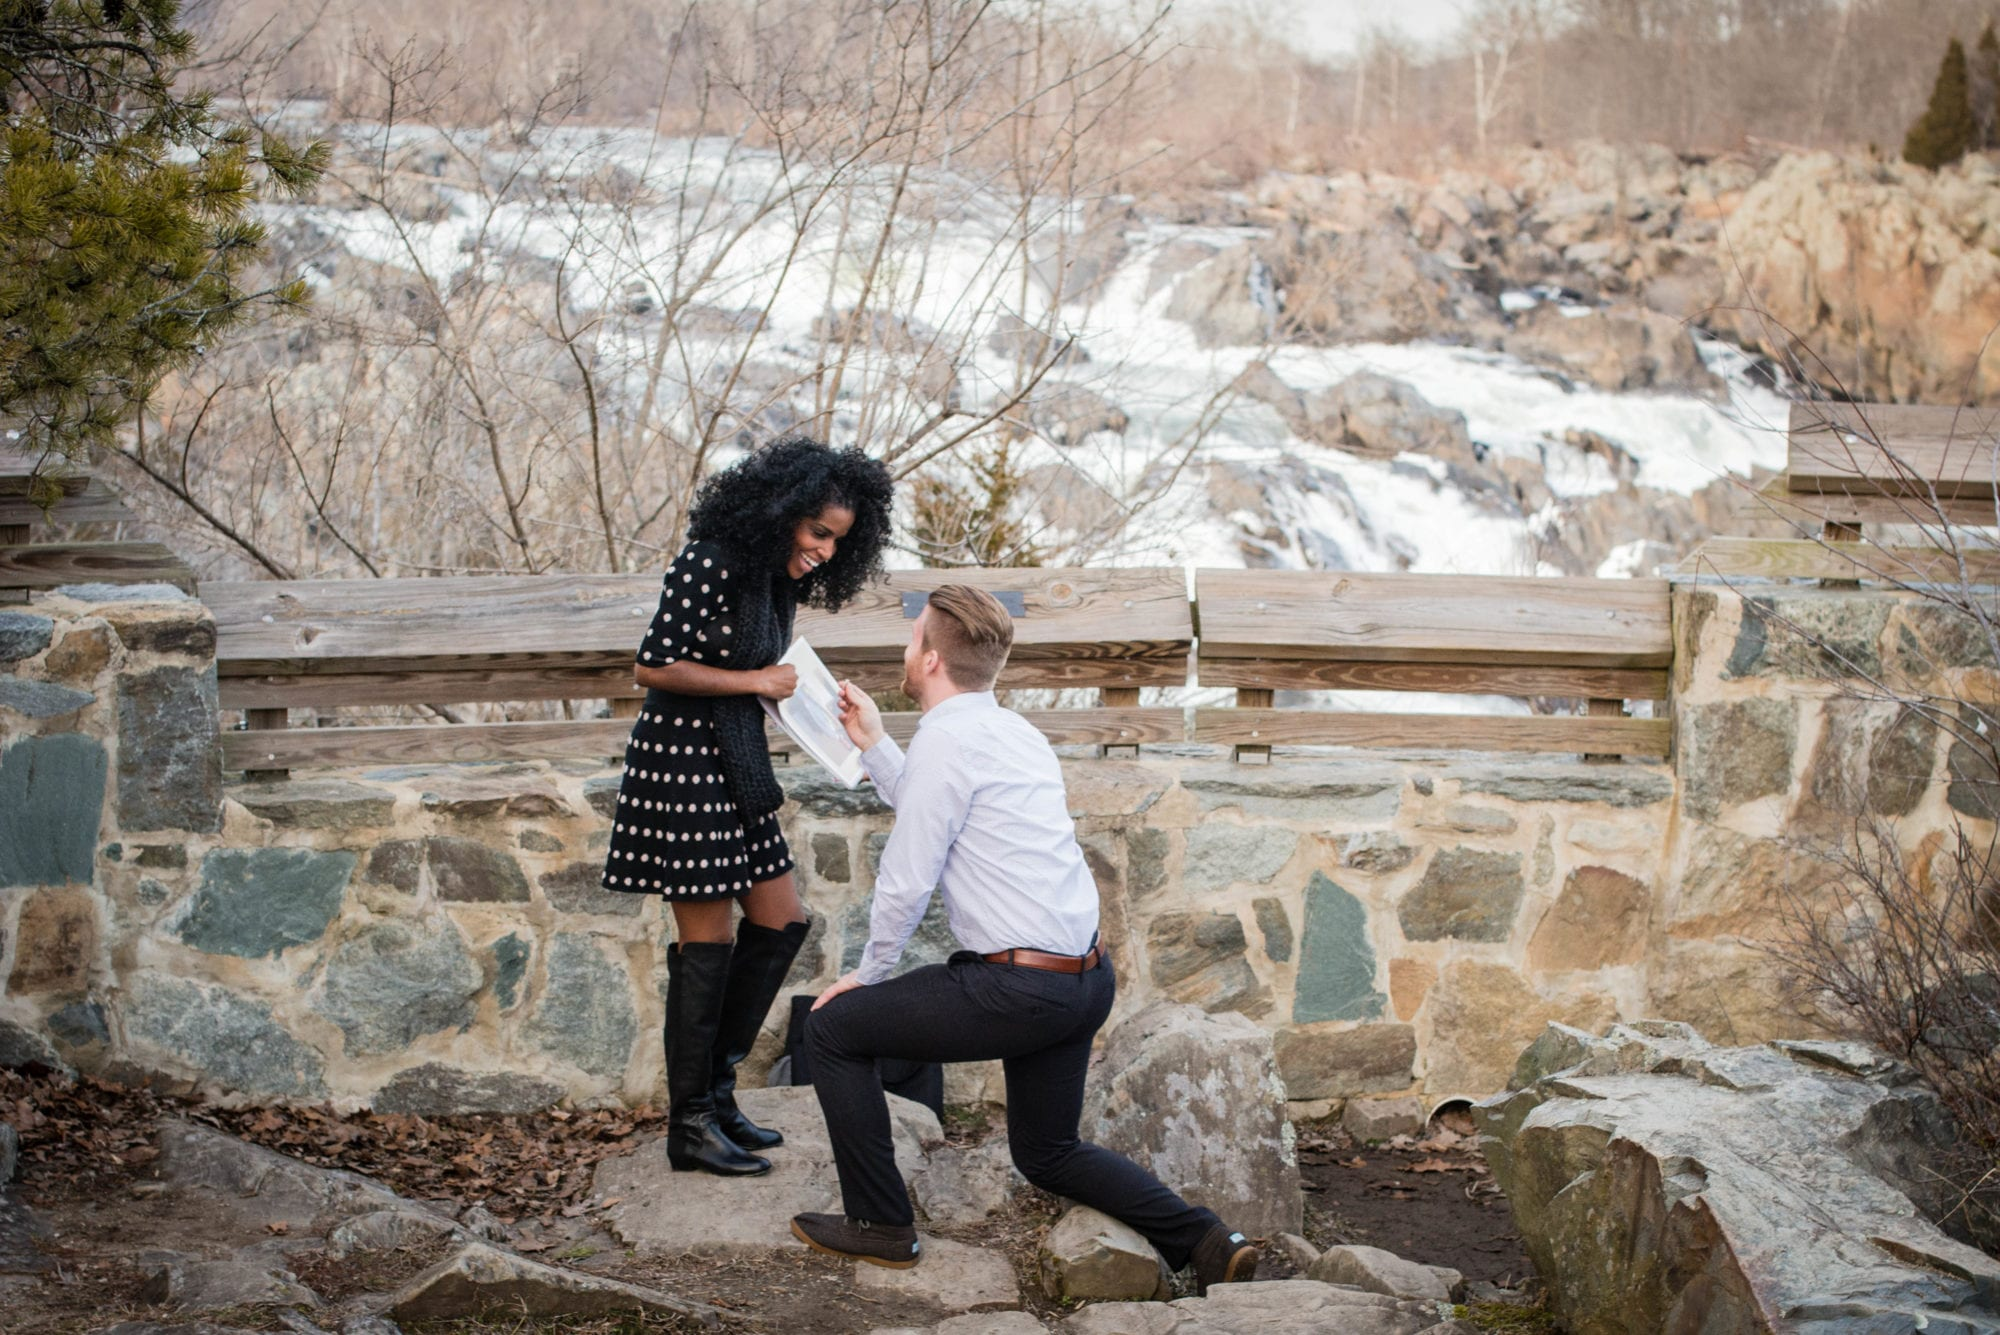 Proposal photography made easy with Photos from the Harty and District Bliss